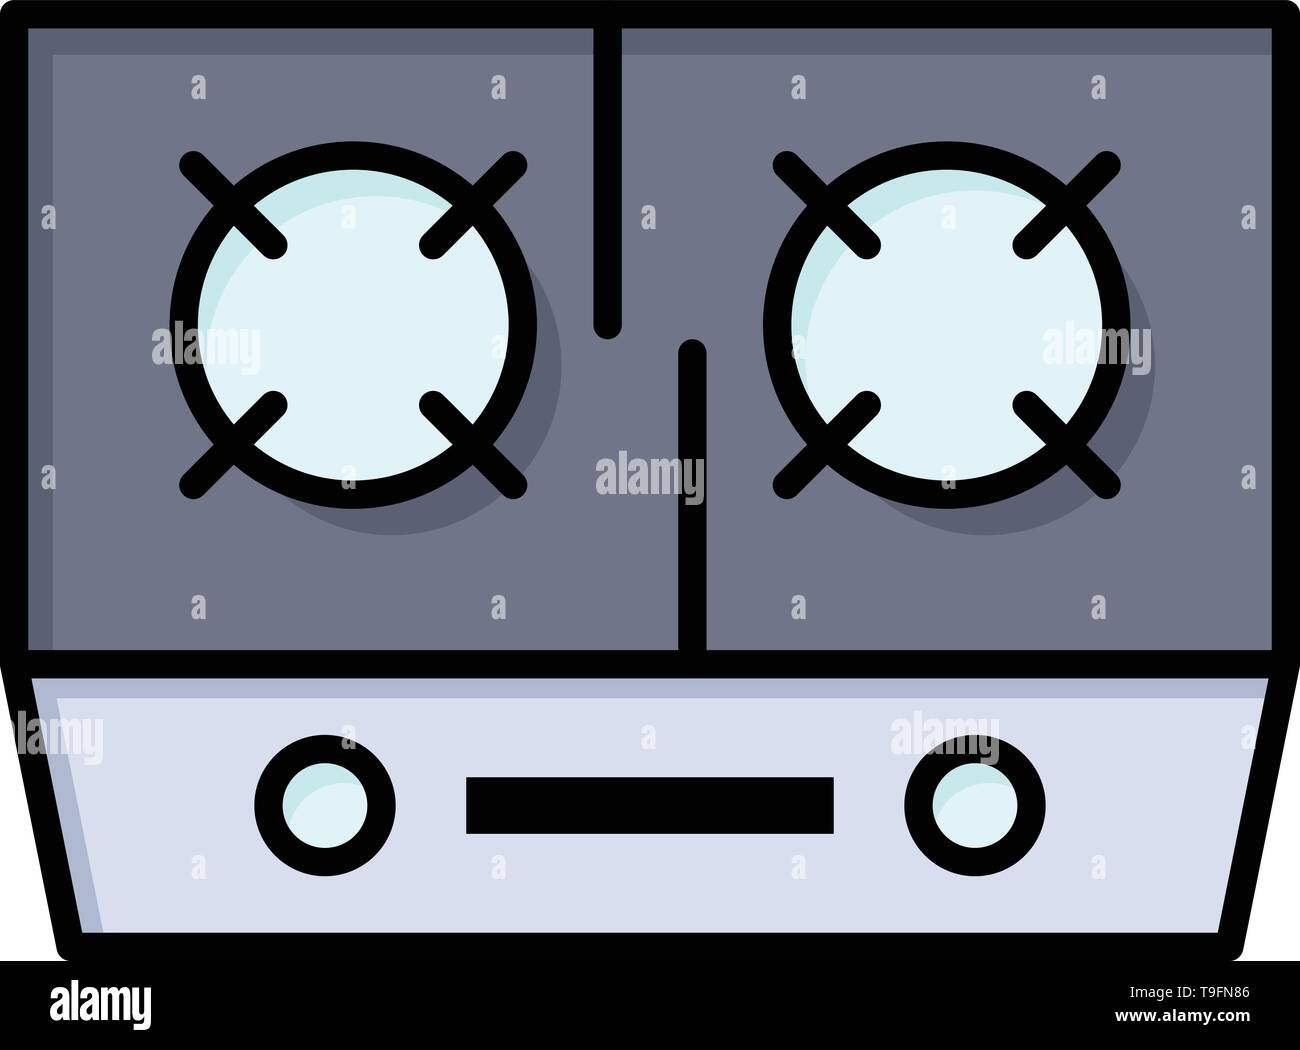 Stove Gas Kitchen Cooking Flat Color Icon Vector Icon Banner Template Stock Vector Image Art Alamy